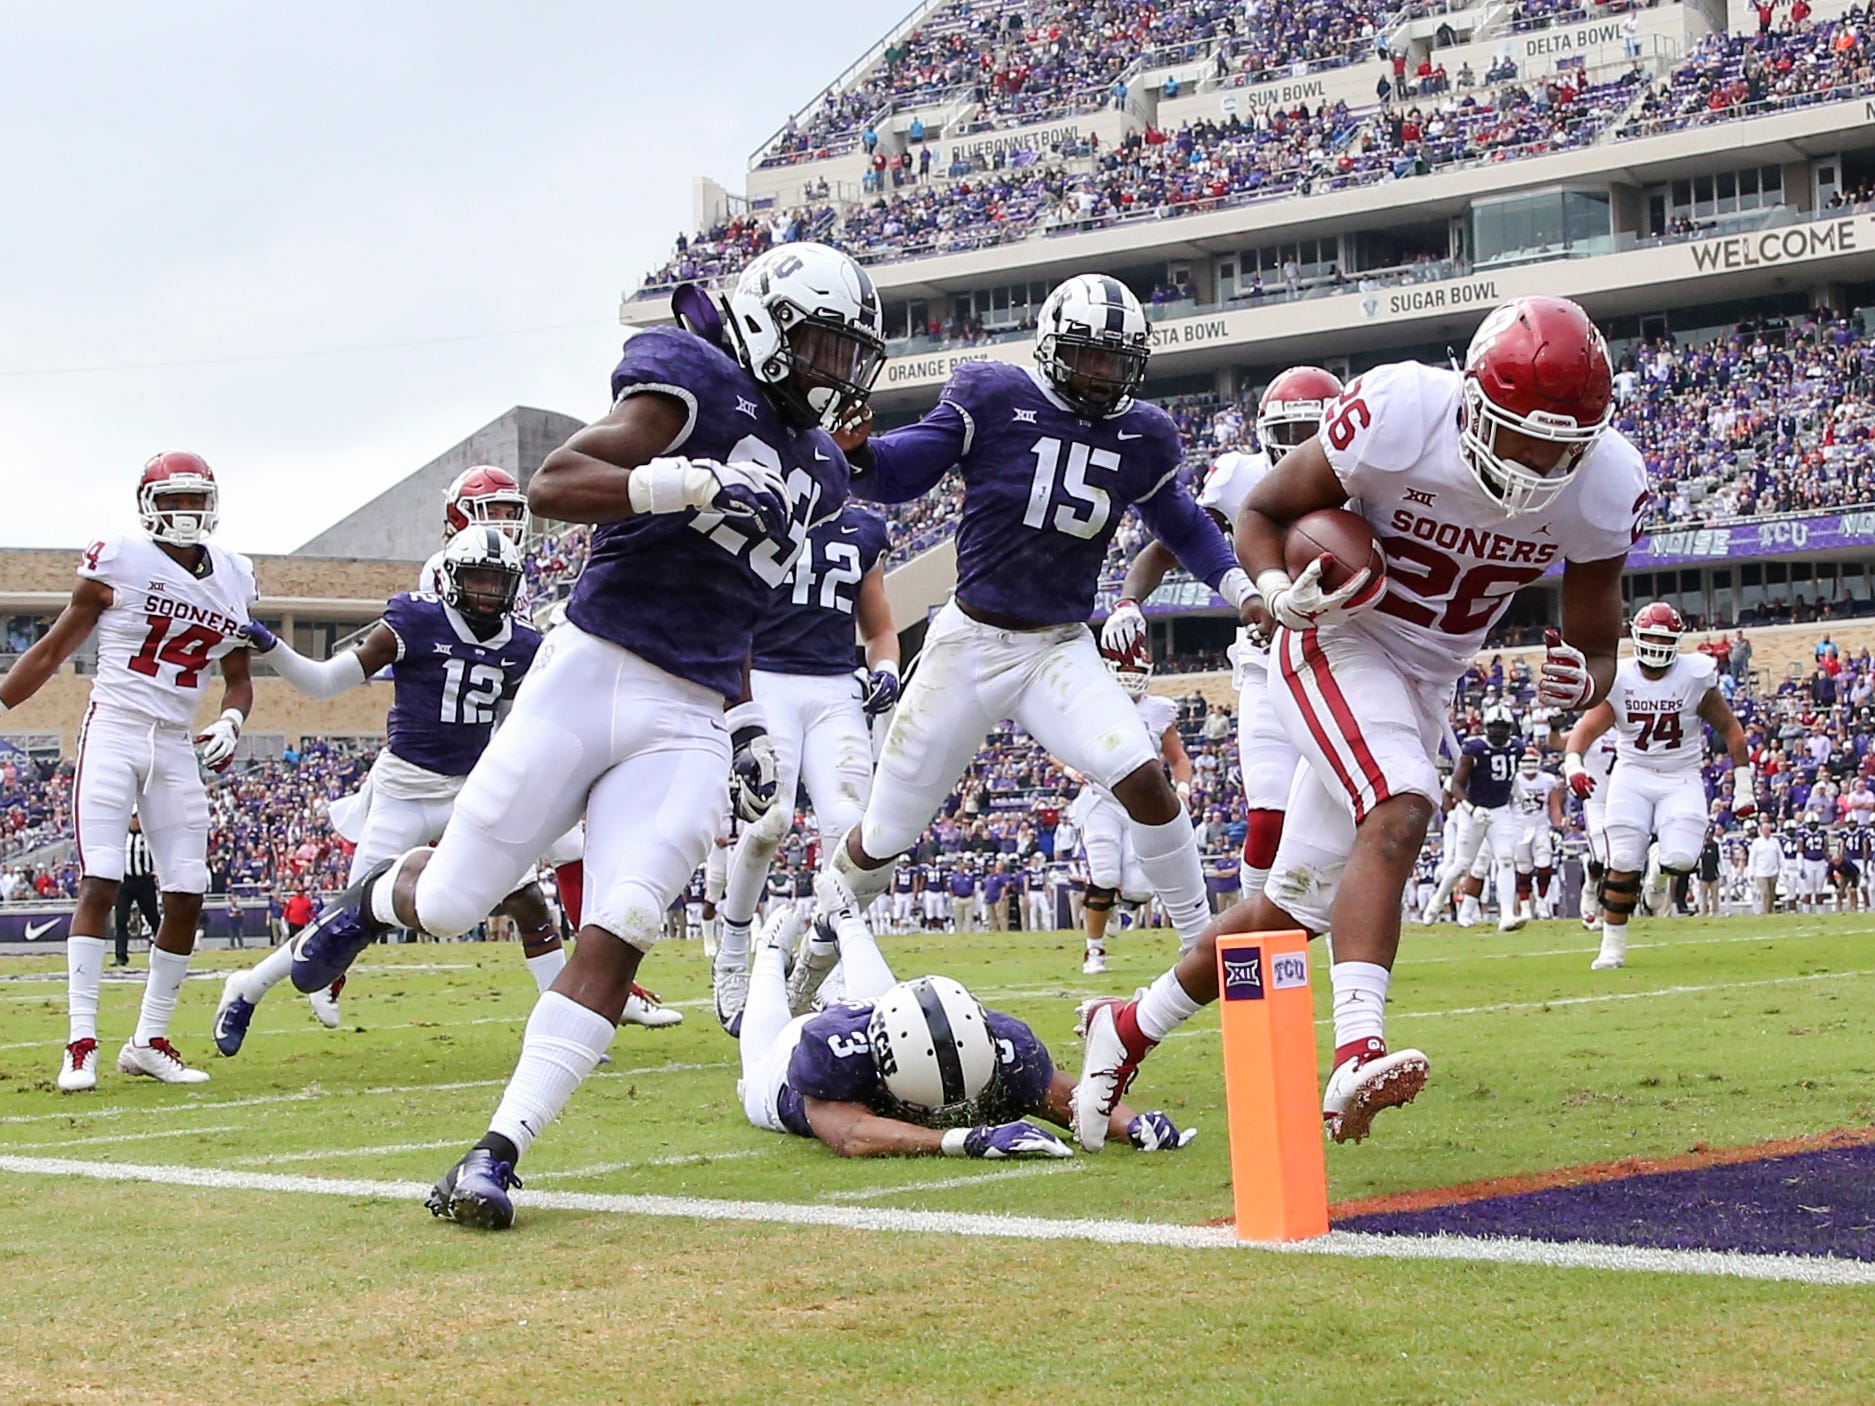 Oklahoma Sooners running back Kennedy Brooks (26) races past TCU Horned Frogs defenders for a first-half touchdown.